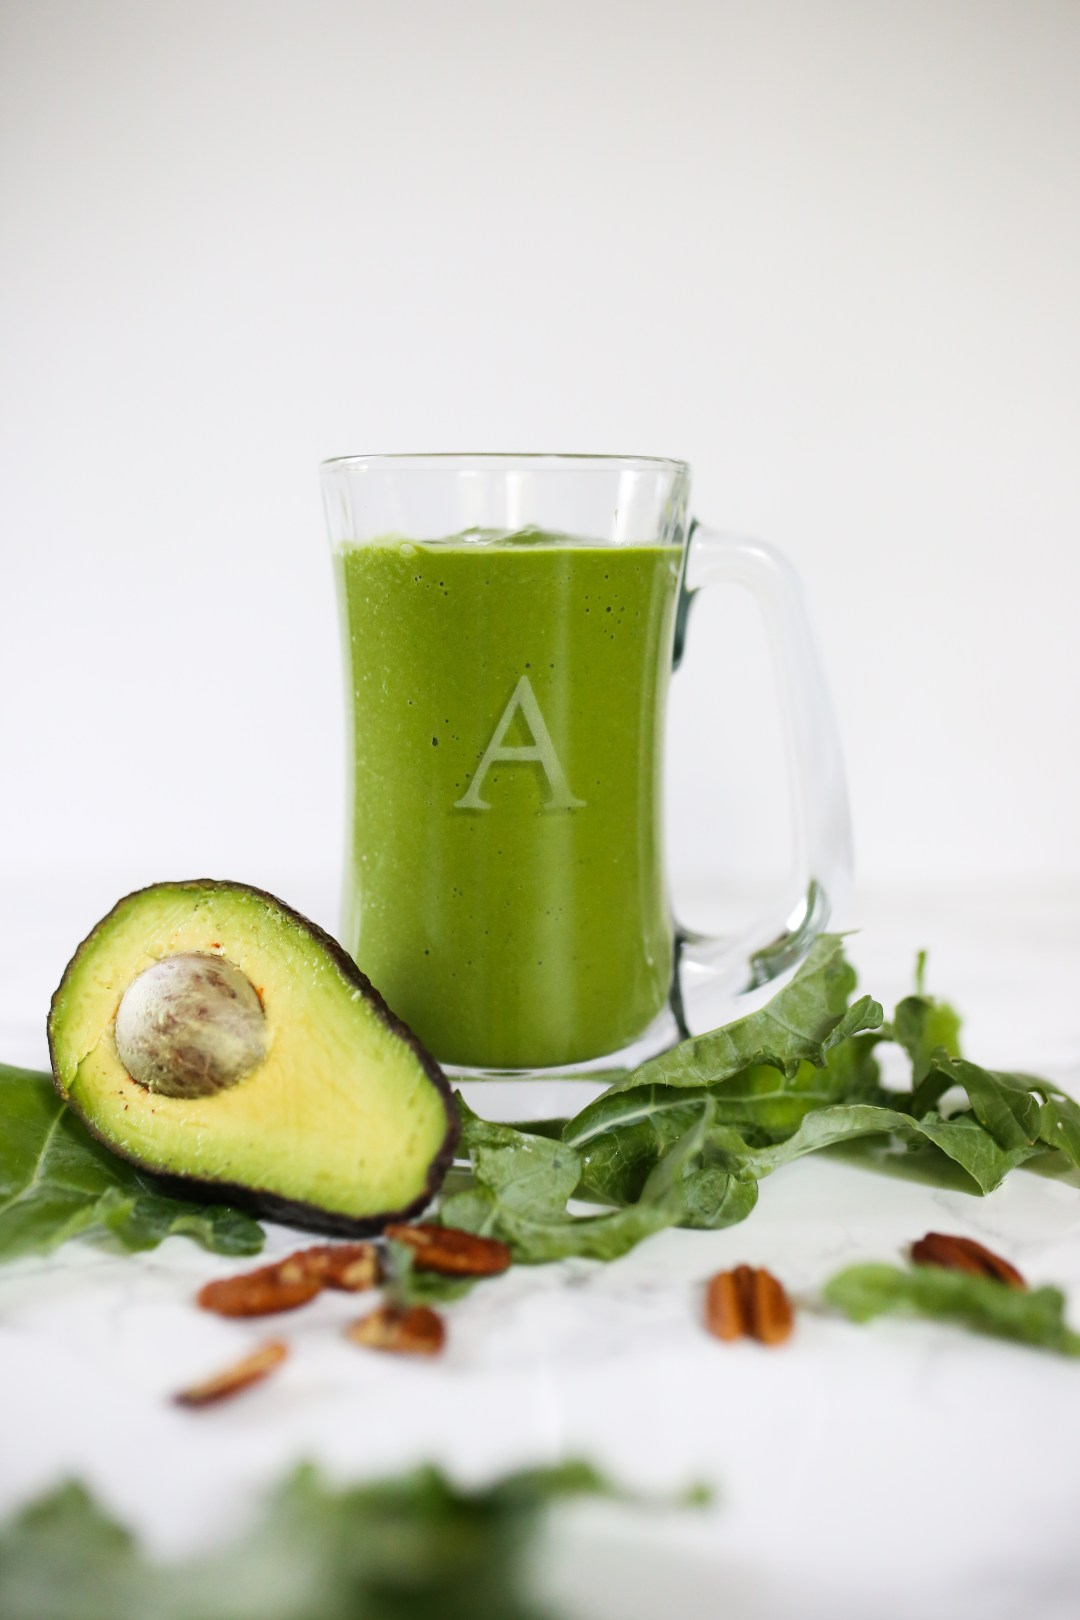 Green smoothie in clear glass